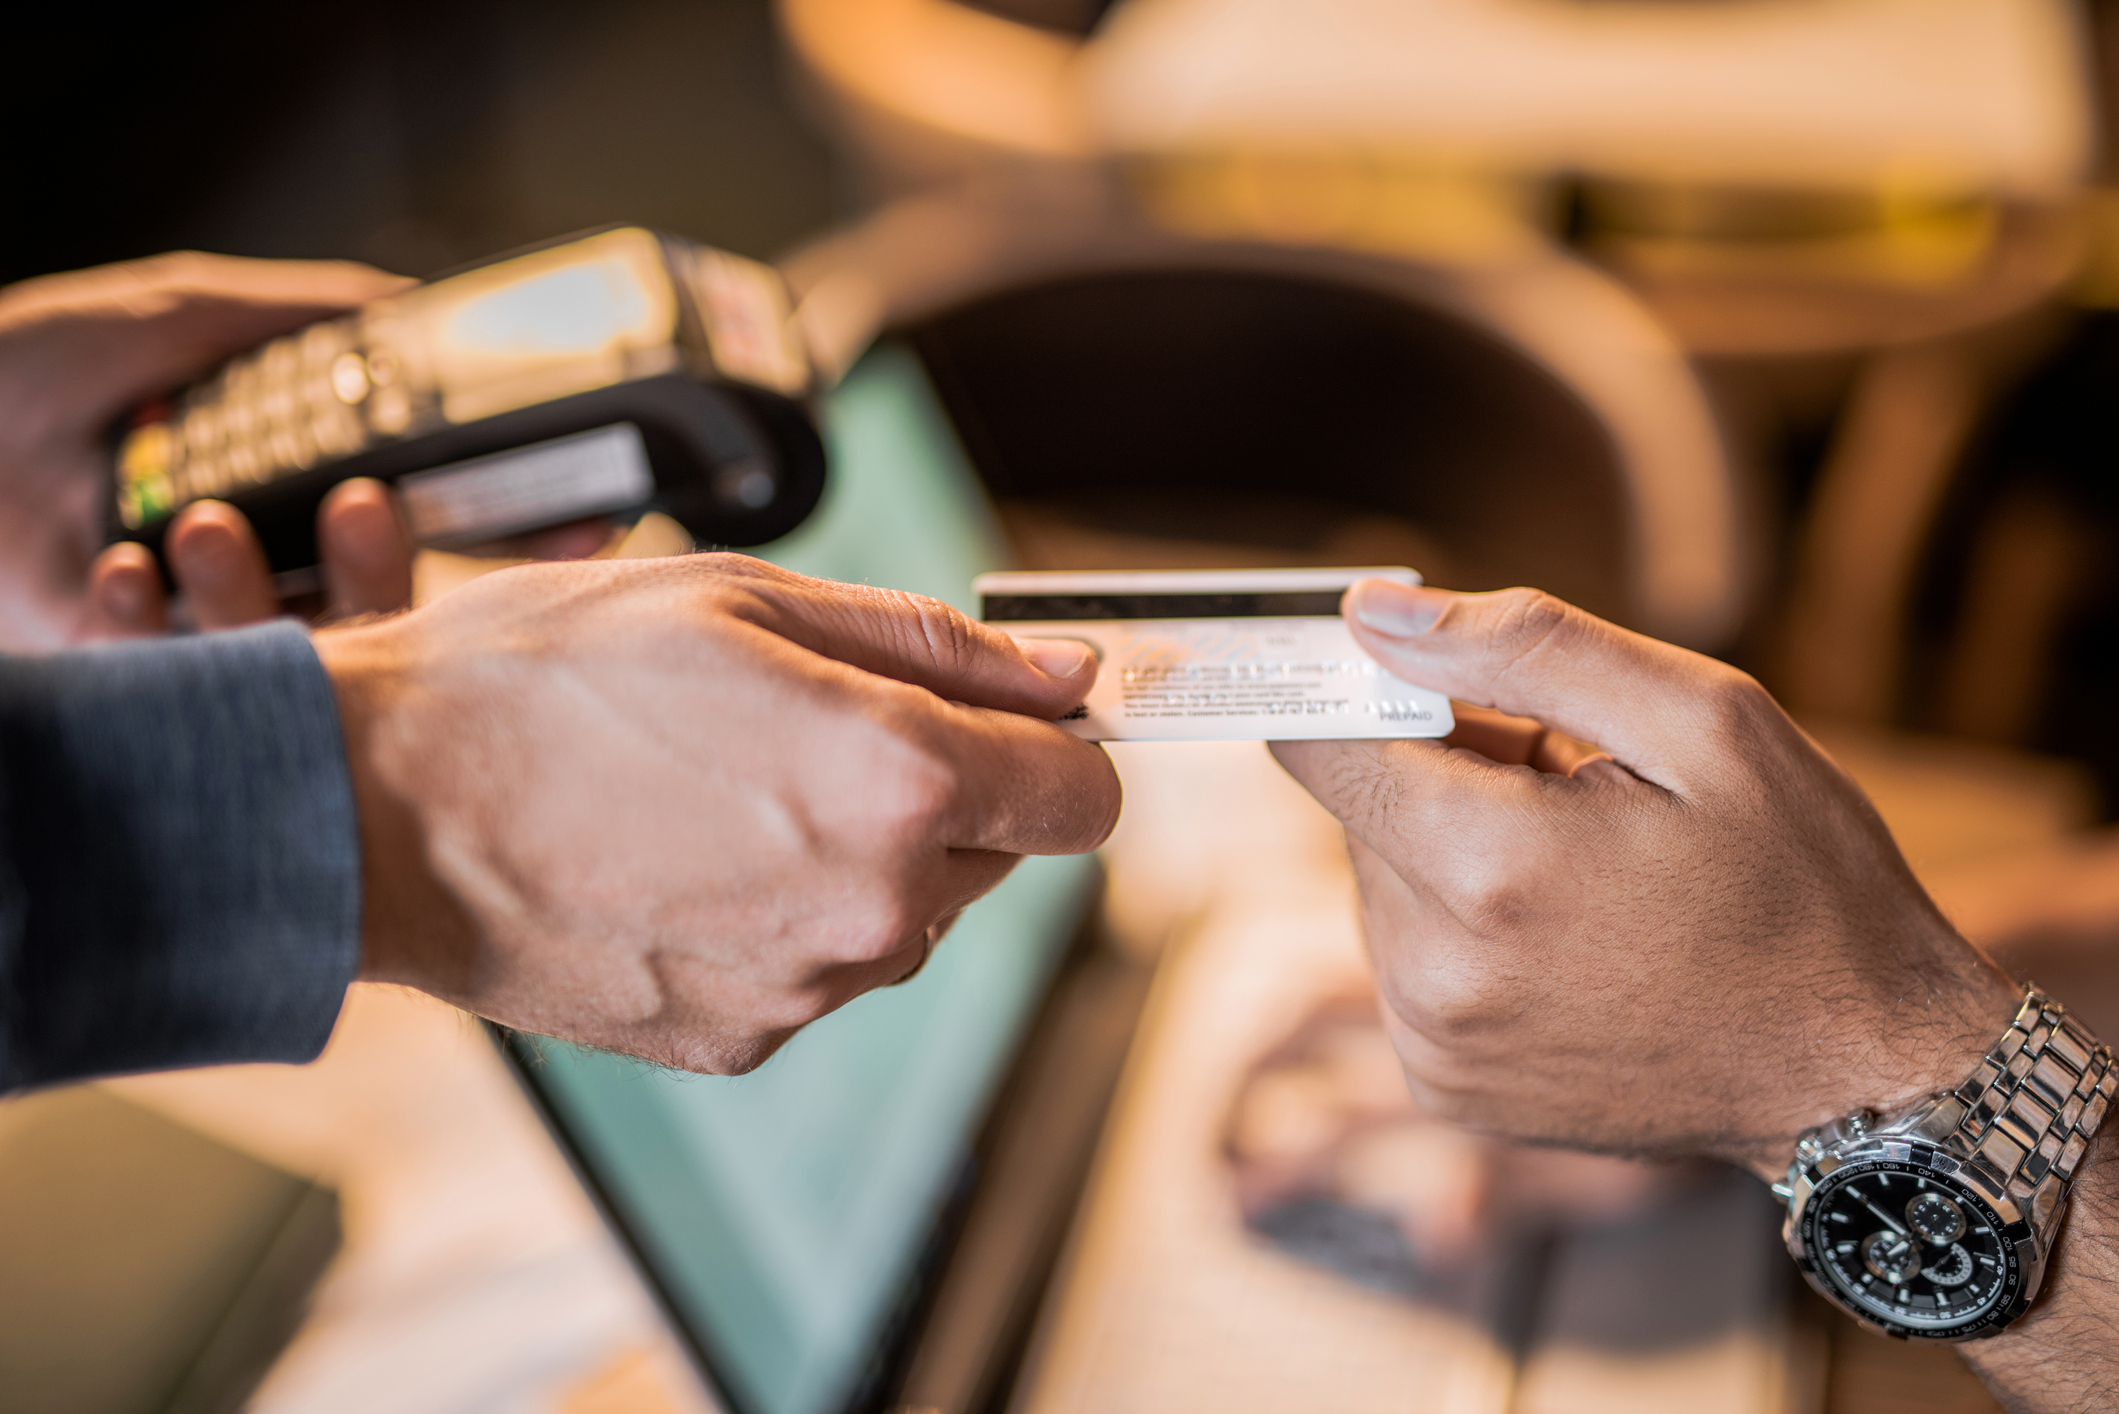 Is It a Good Idea to Transfer Credit Card Debt?